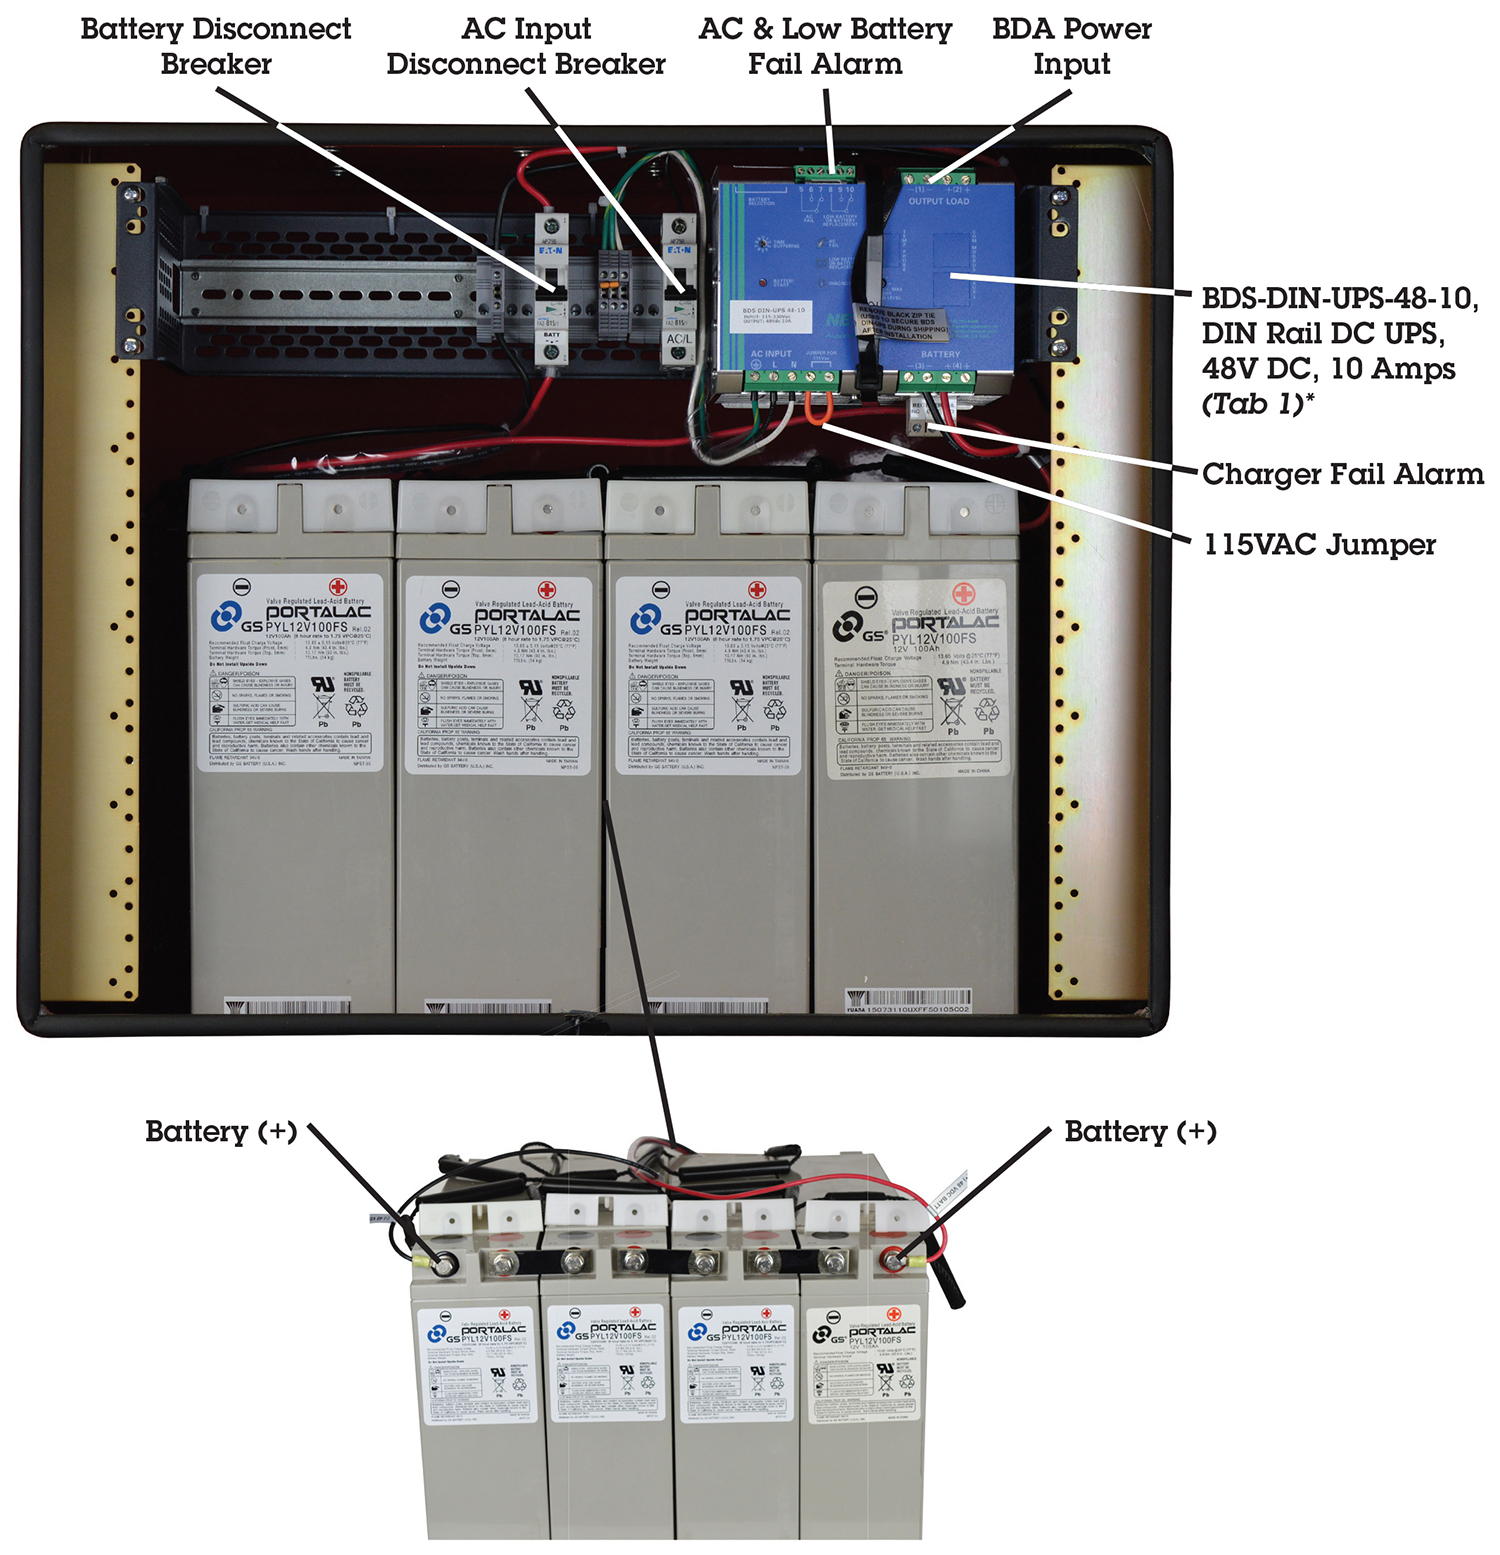 Dc Power Enclosures For Nfpa 1221 In Building Standards 12v 110 Block Enclosure Wiring Diagram Public Safety Das Pe Series 48 Vcc 480